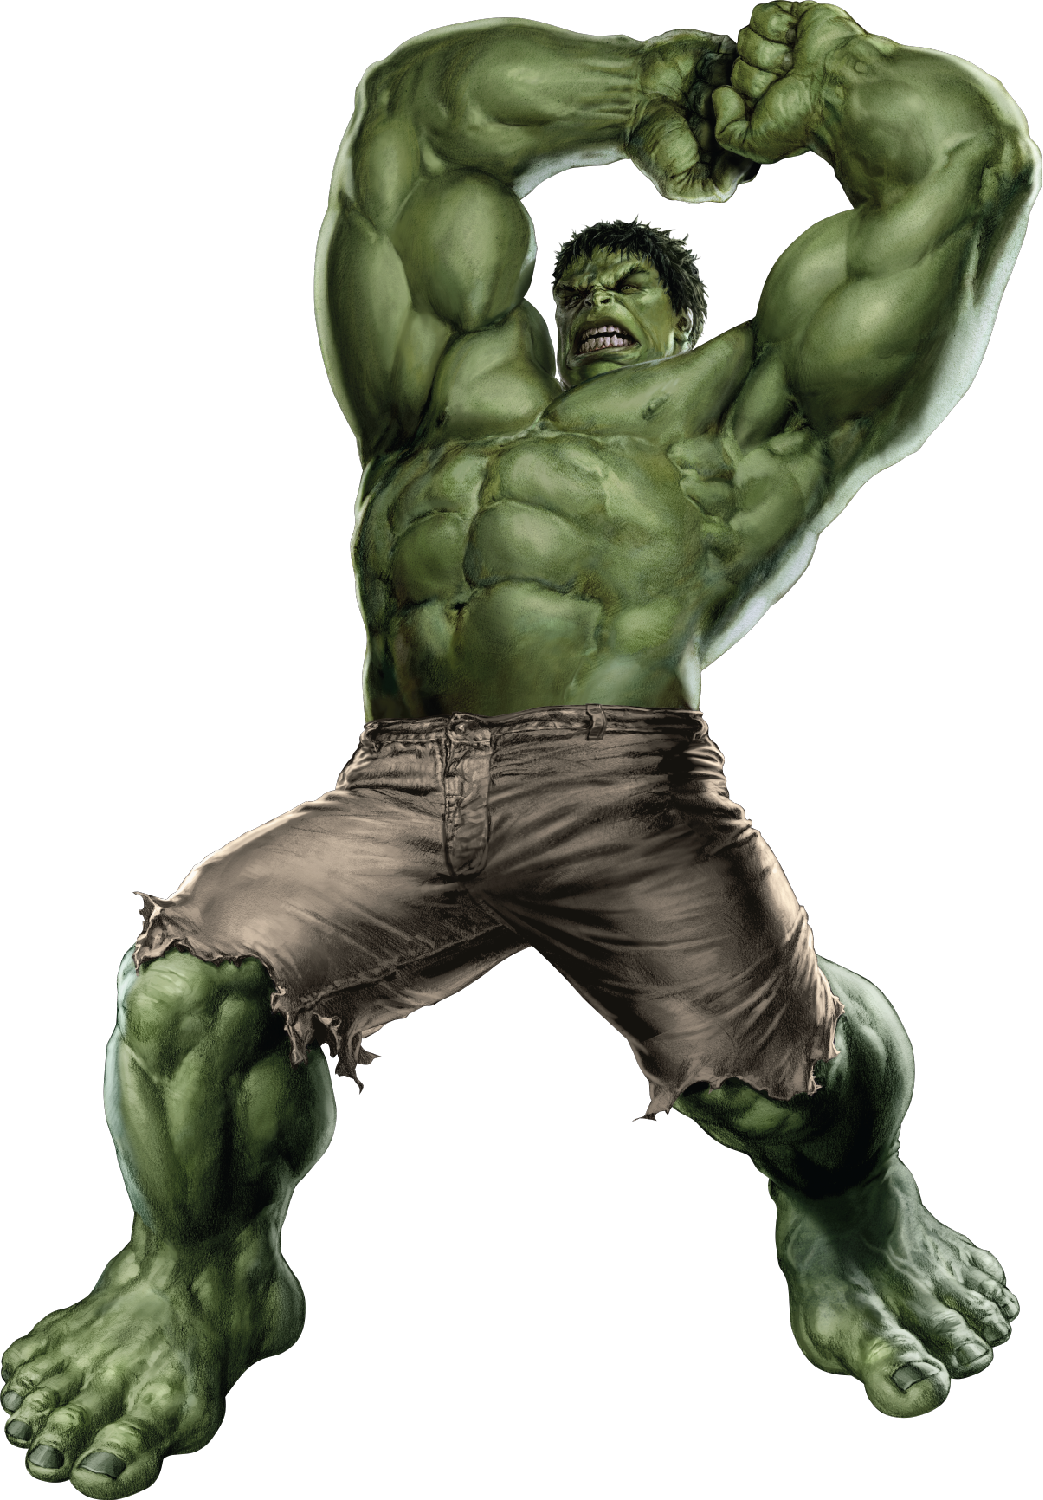 hulk   2014 car new childcare clipart free child care clipart images